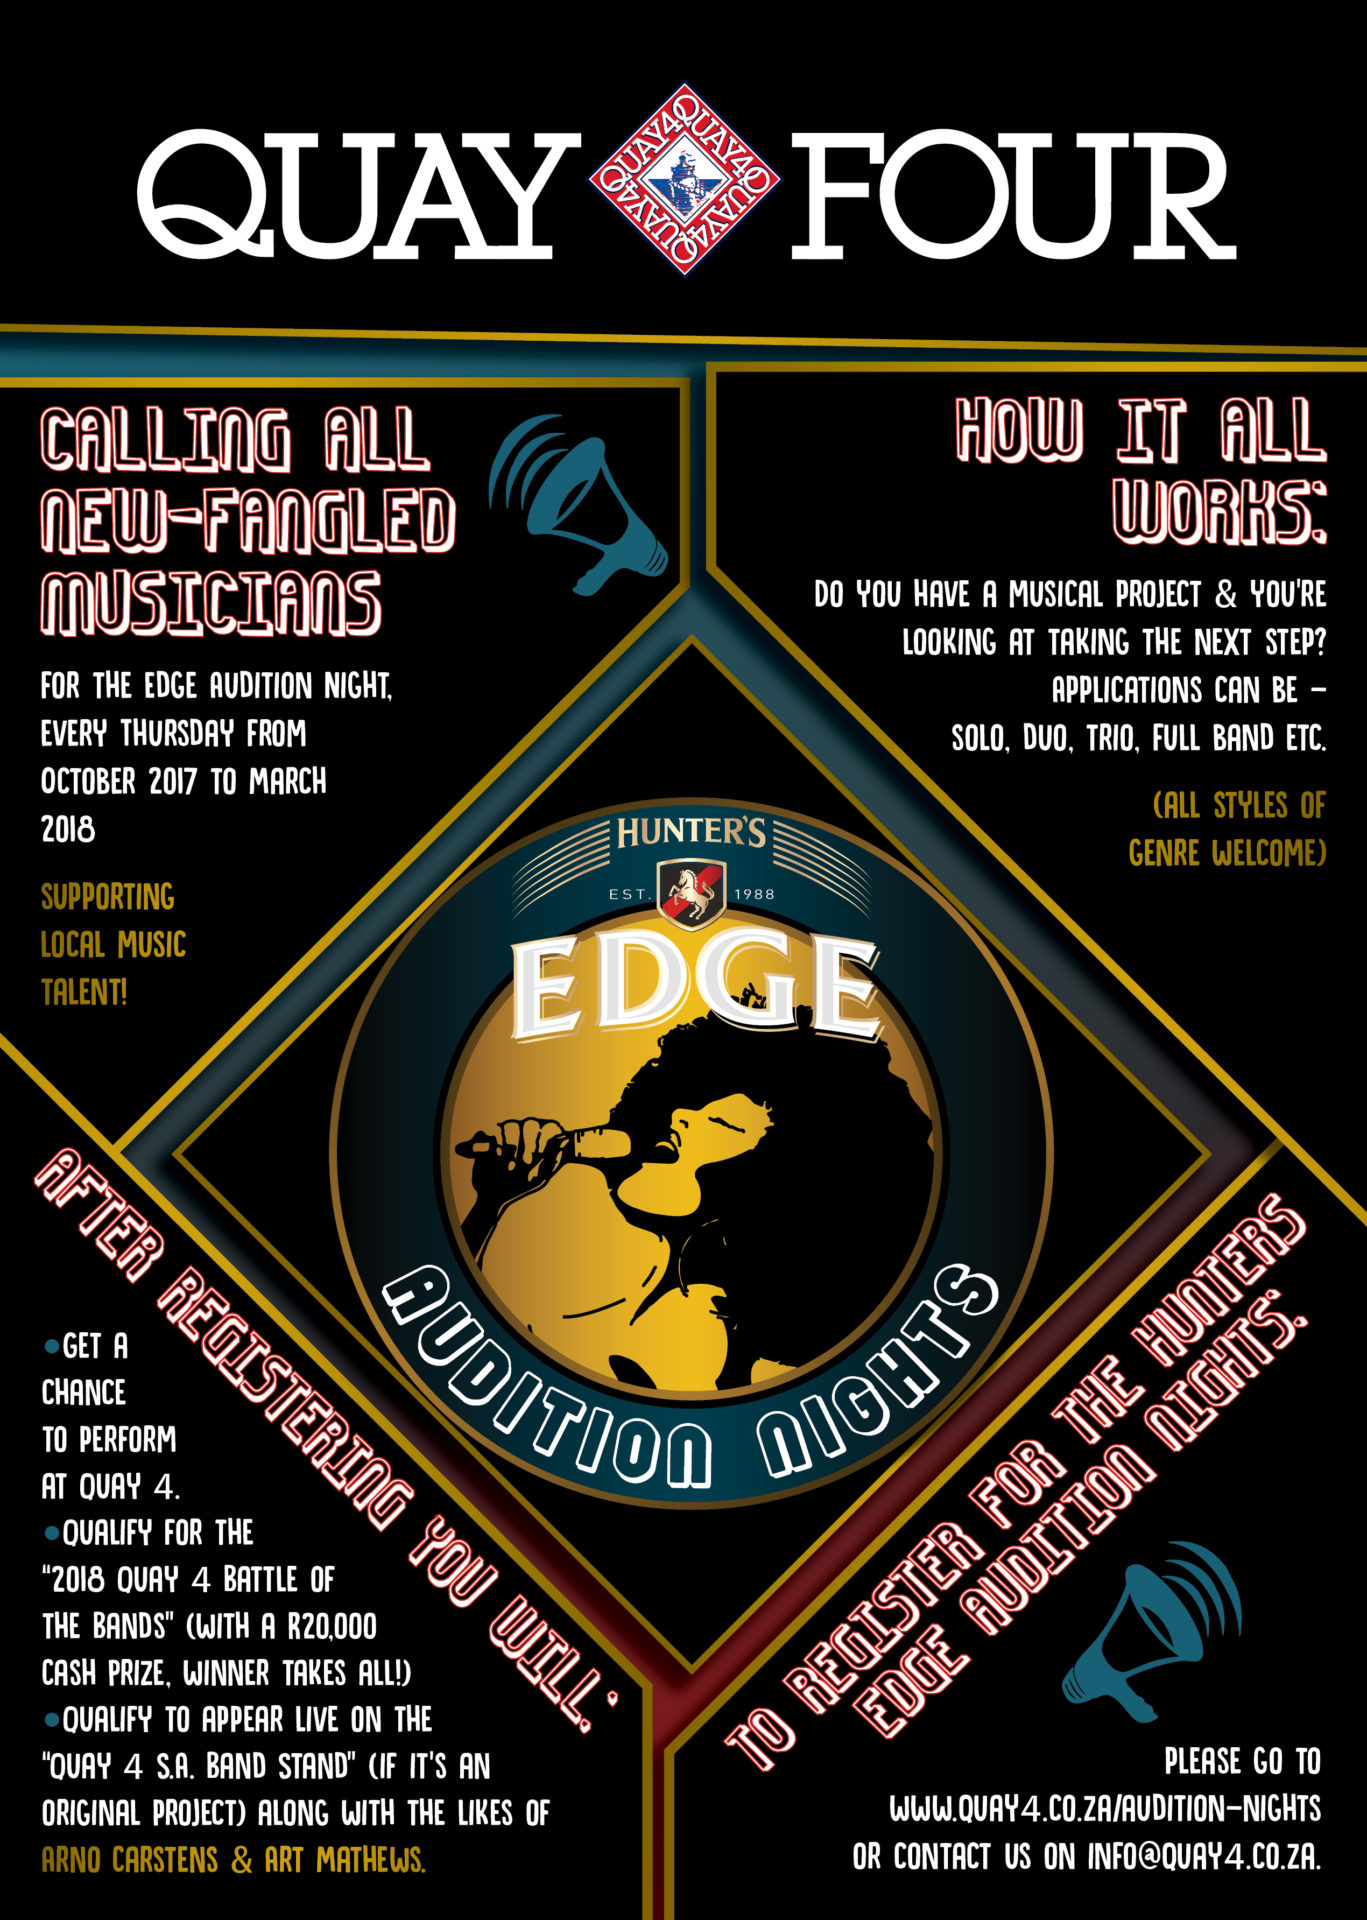 AUDITION NIGHTS CALLING ALL NEW FANGLED MUSICIANS For The Edge Audition Night Every Thursday From October 2017 To March 2018 Supporting Local